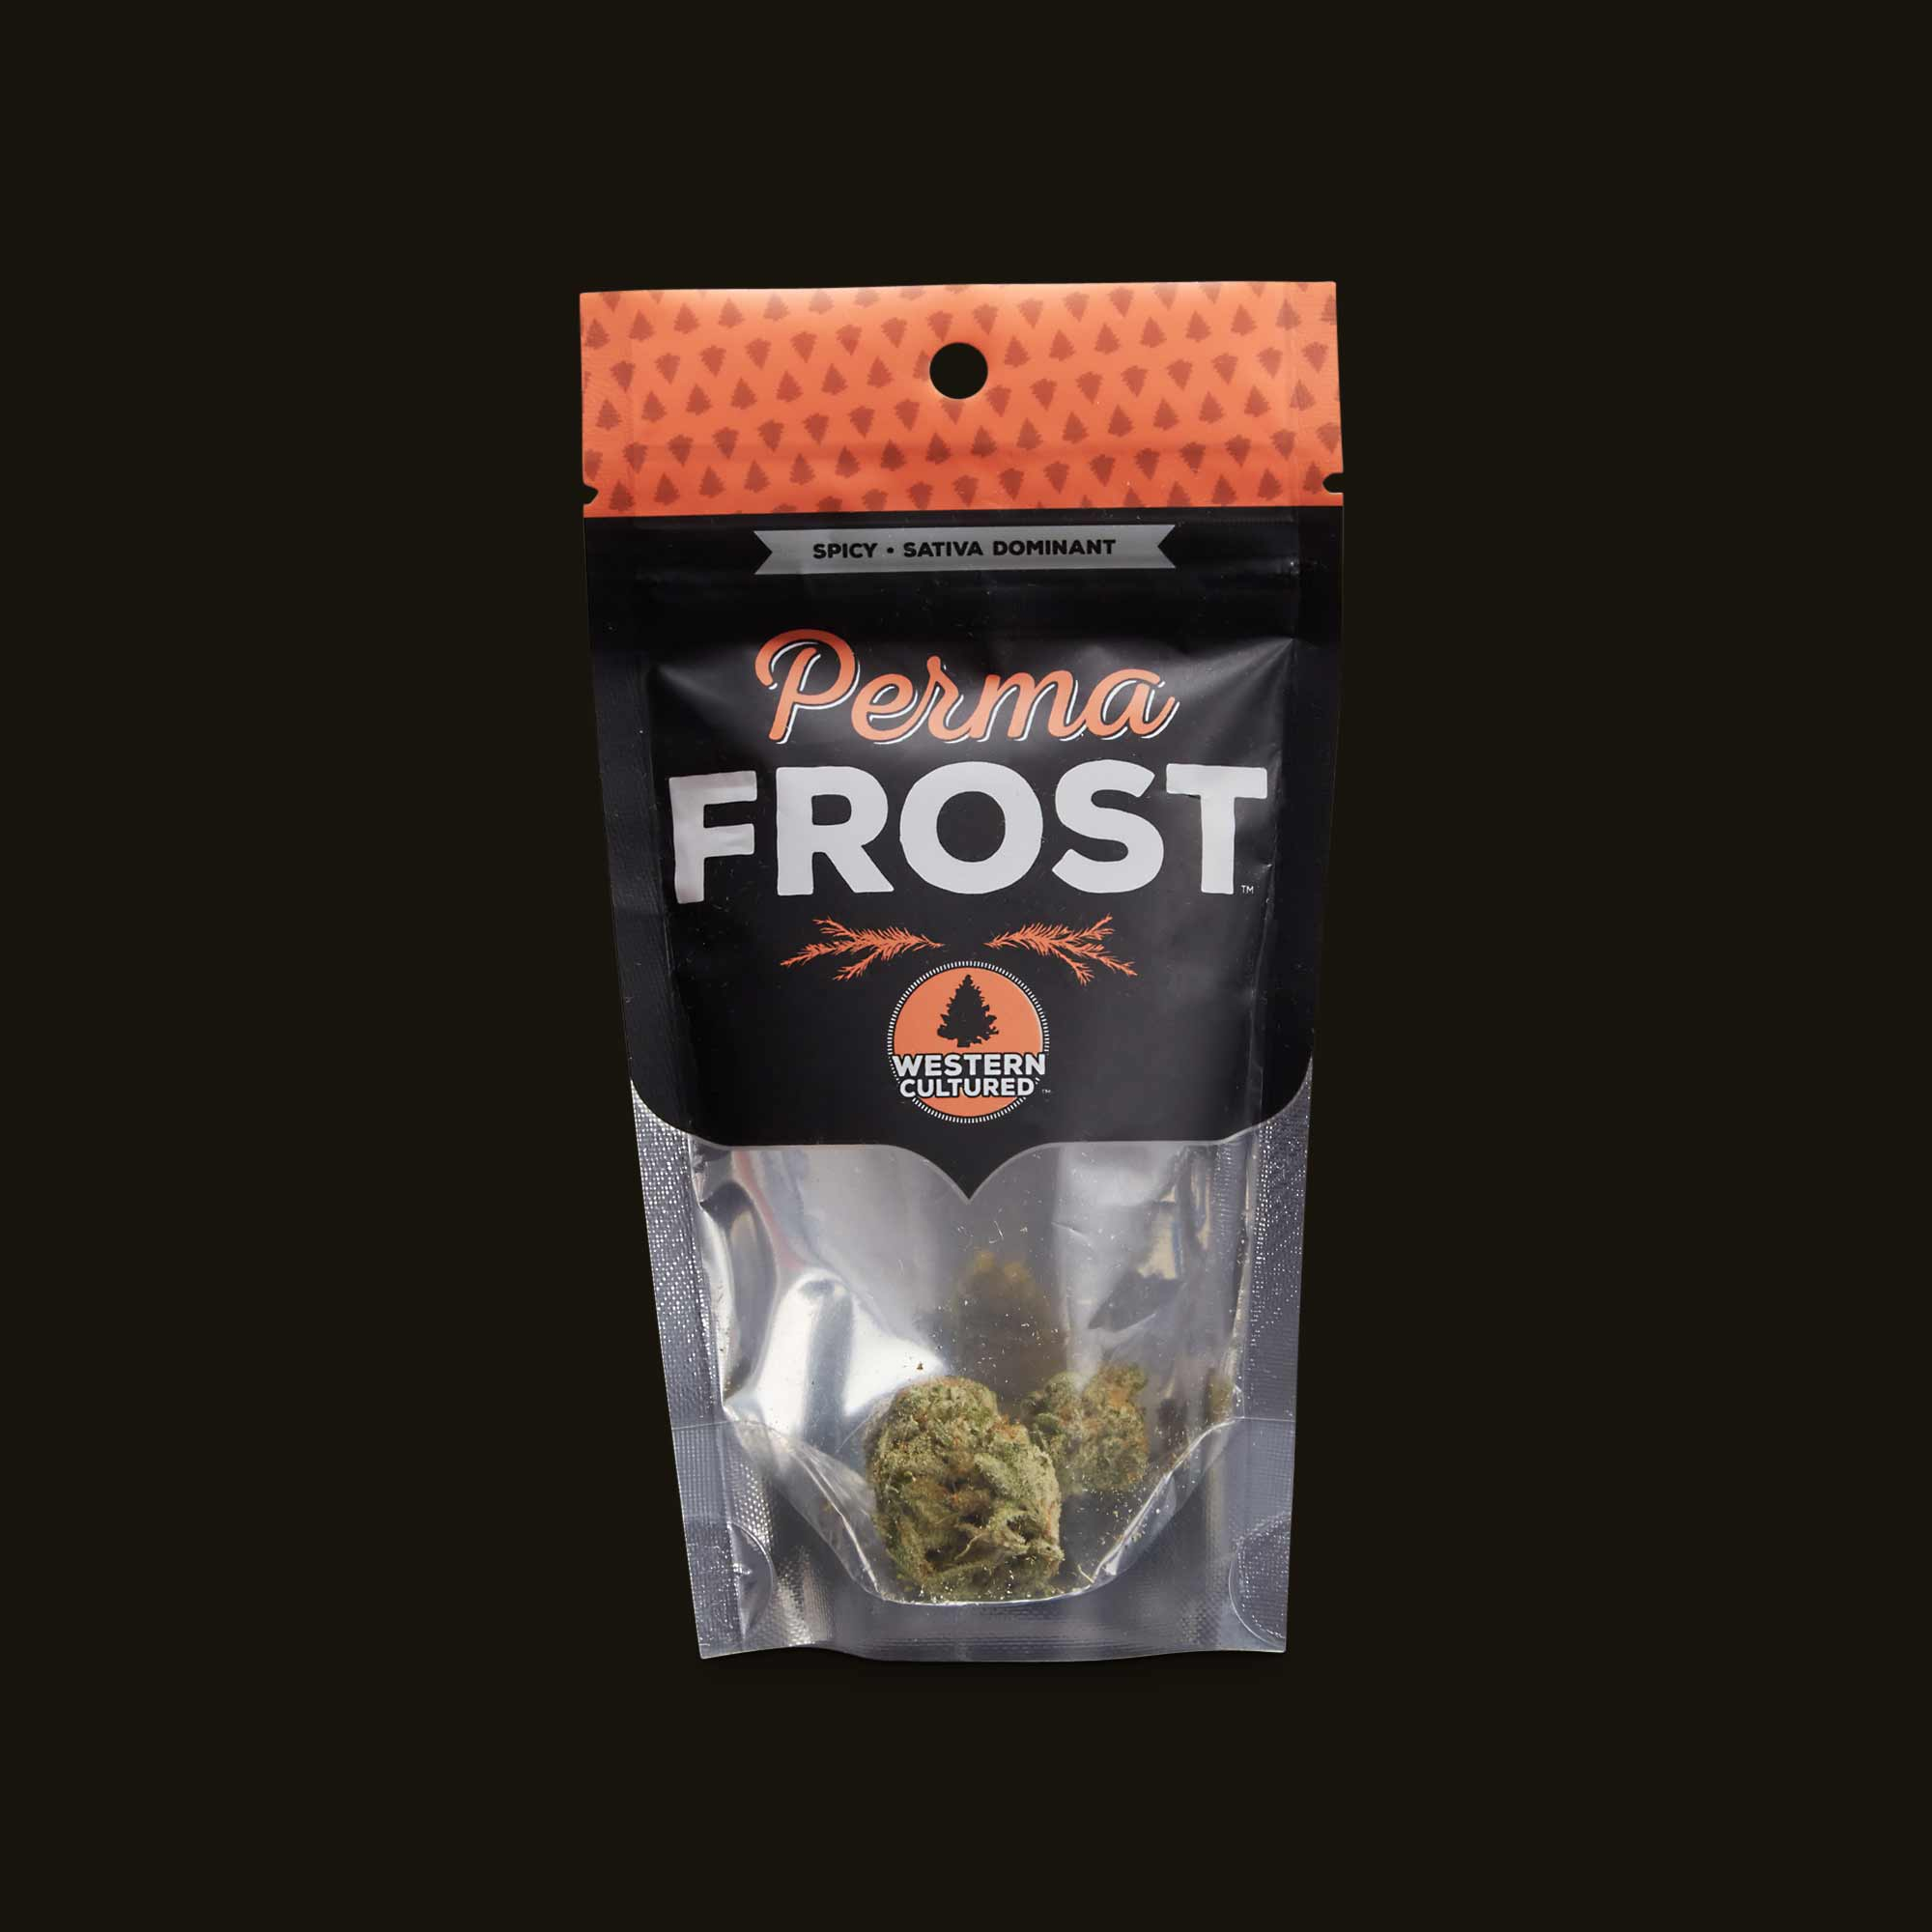 Western Cultured Perma Frost